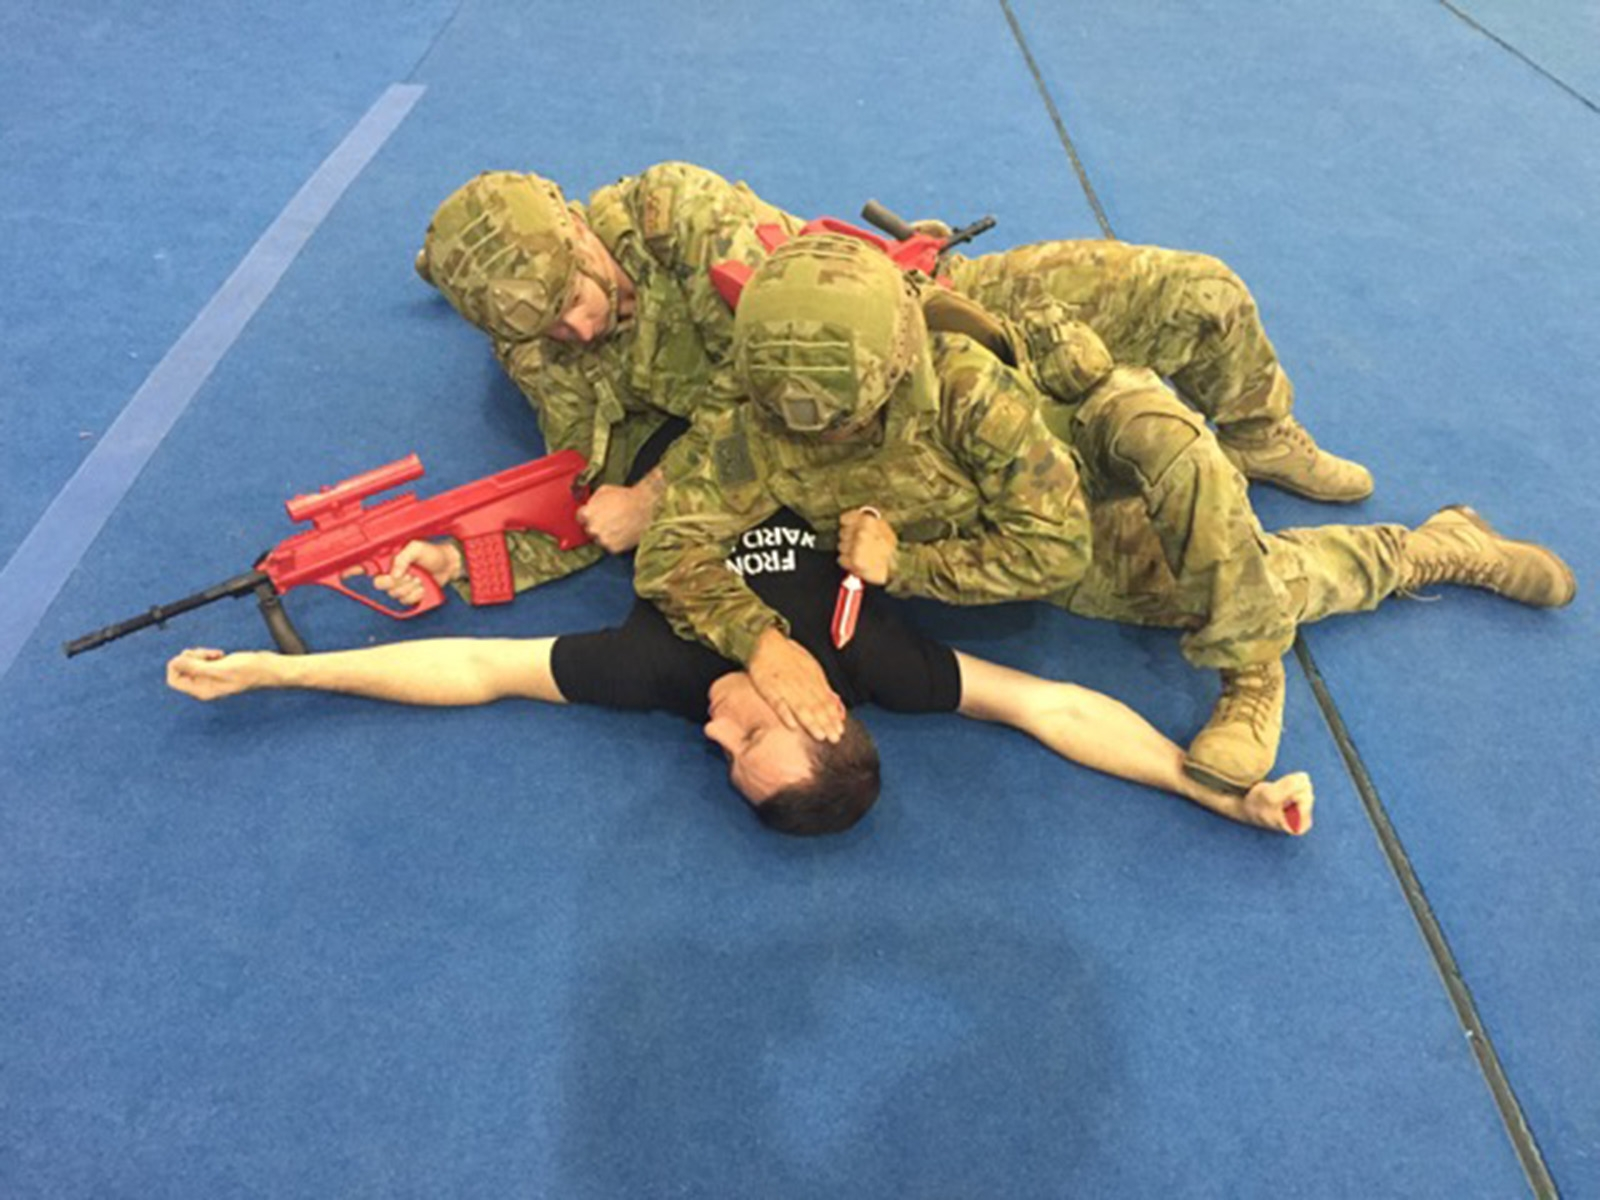 A team of soldiers apply high-cross domination with the 'any available weapon' principle during ACP training